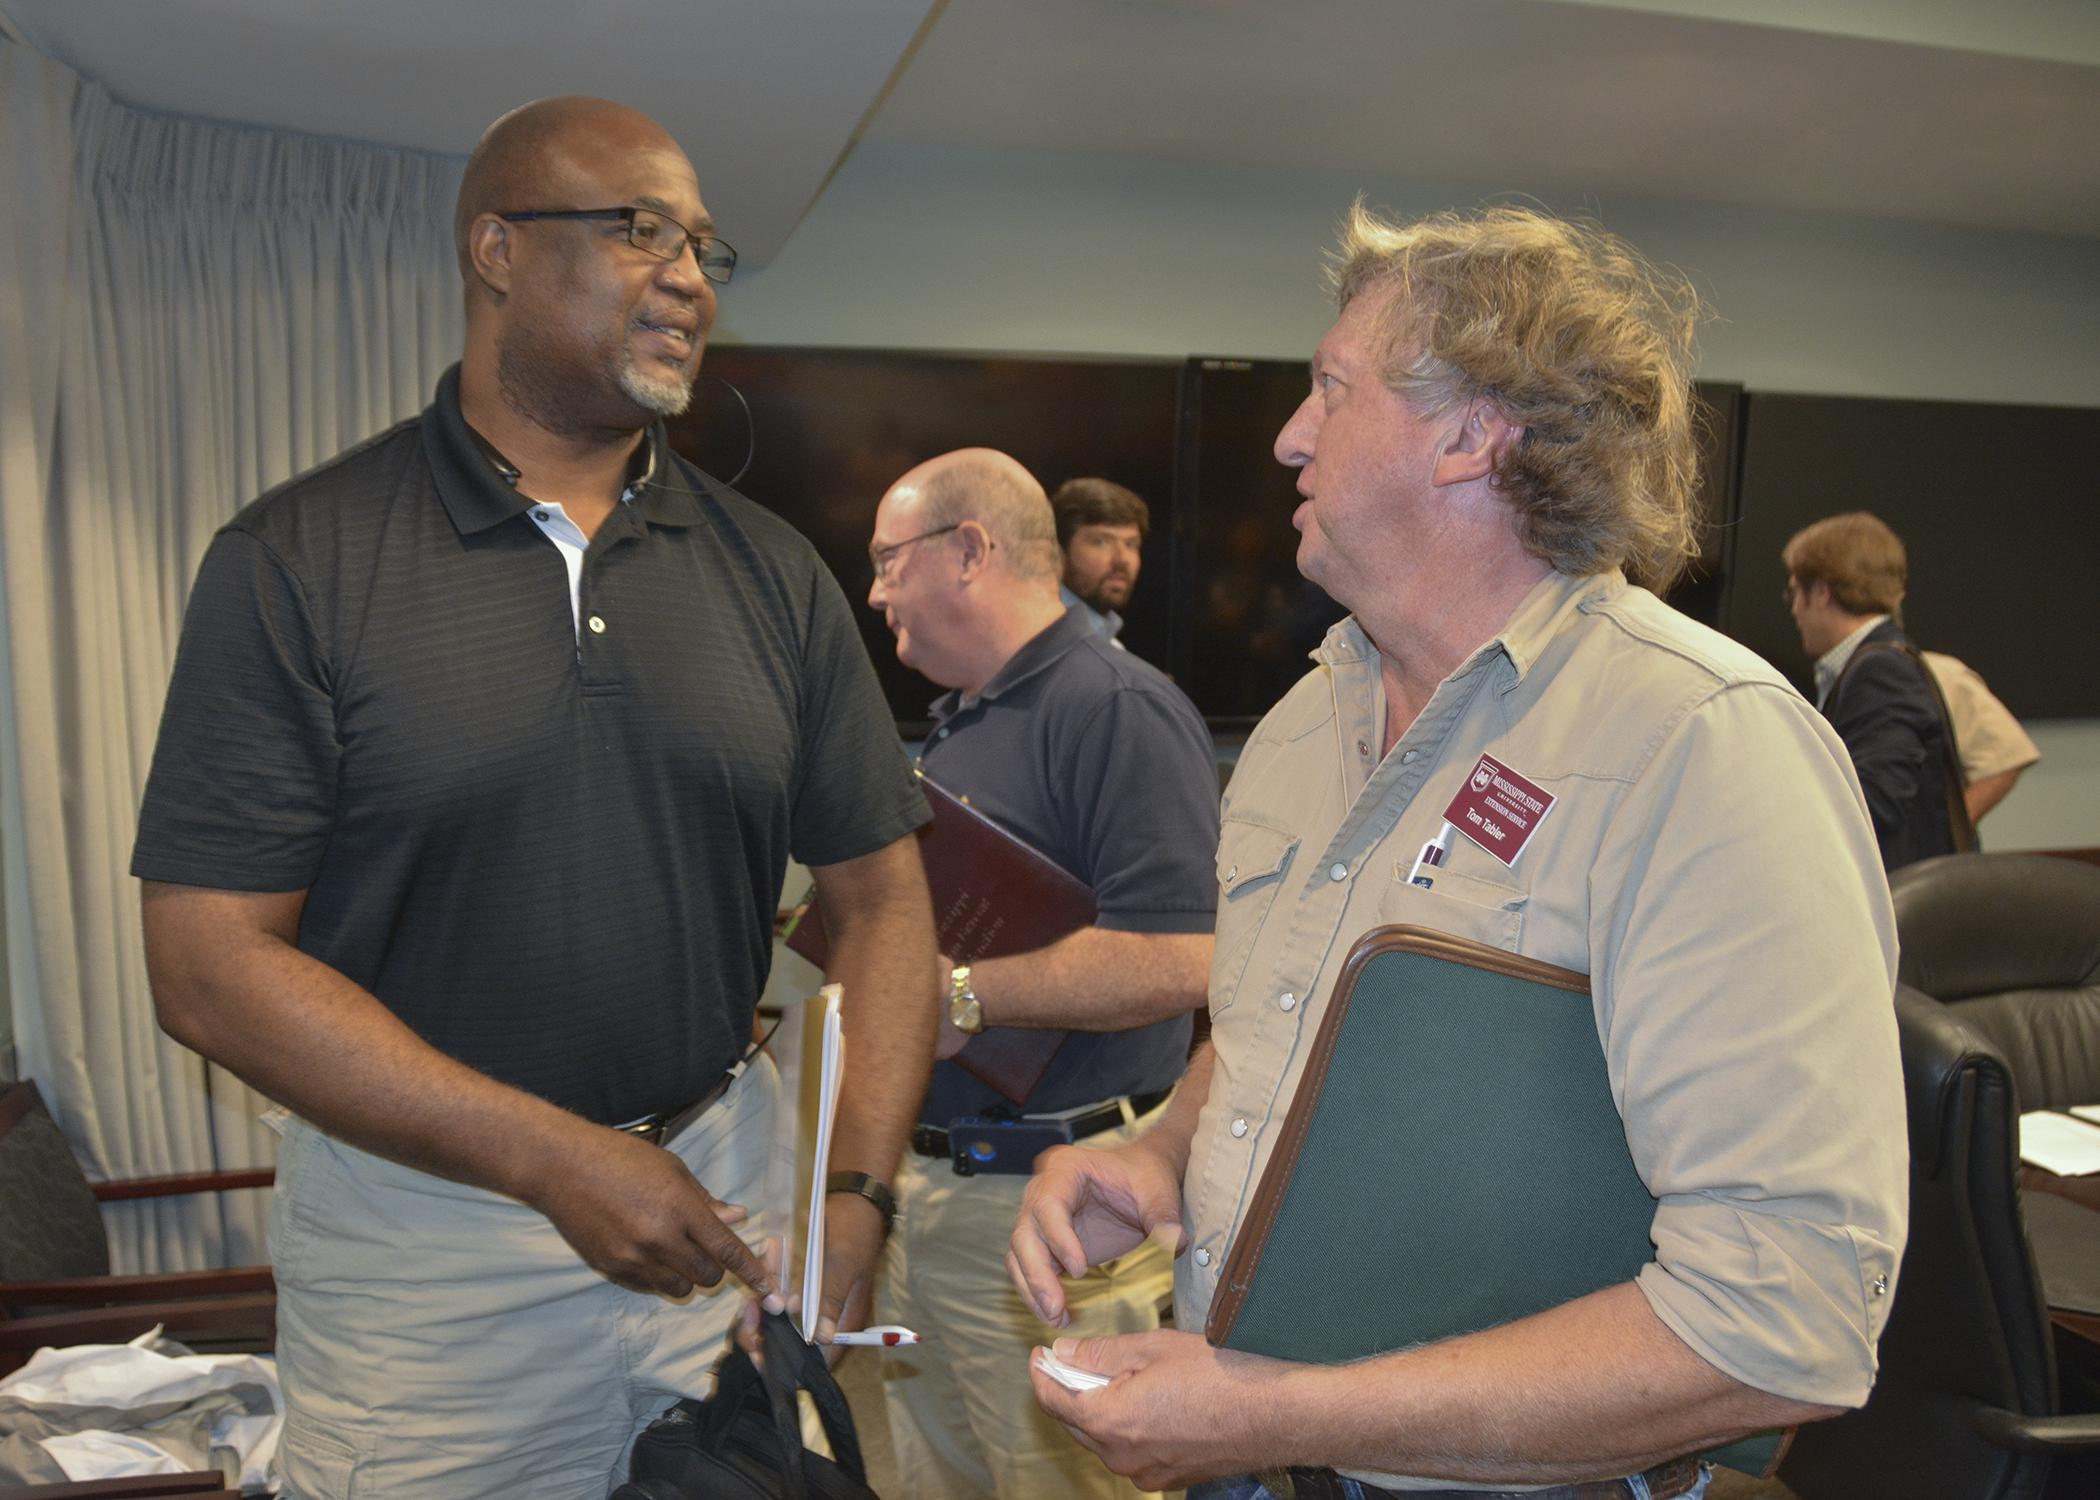 Greg Walker, director of human resources for Mar-Jac Poultry, left, talks to Tom Tabler, a poultry specialist with the Mississippi State University Extension Service, during a bird flu information meeting at the Mississippi Emergency Management Agency office in Pearl on Sept. 11, 2015. (Photo by MSU Ag Communications/Linda Breazeale)